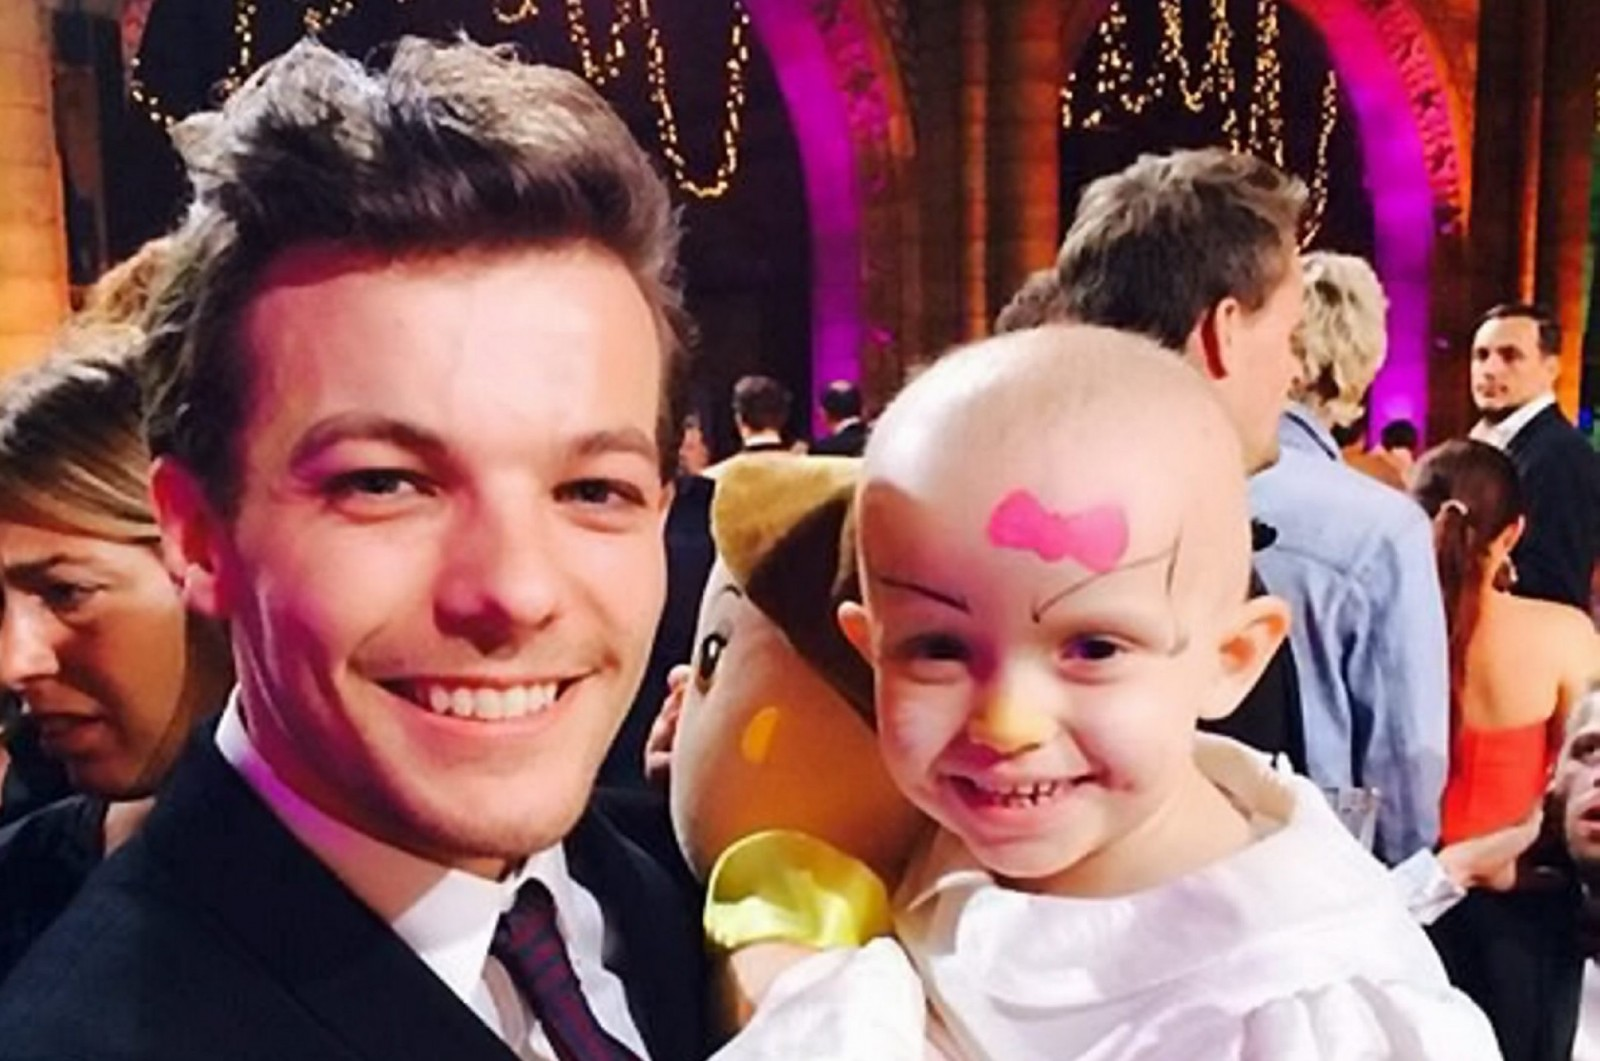 The four year old battling cancer for the second time gets a boost from her idol